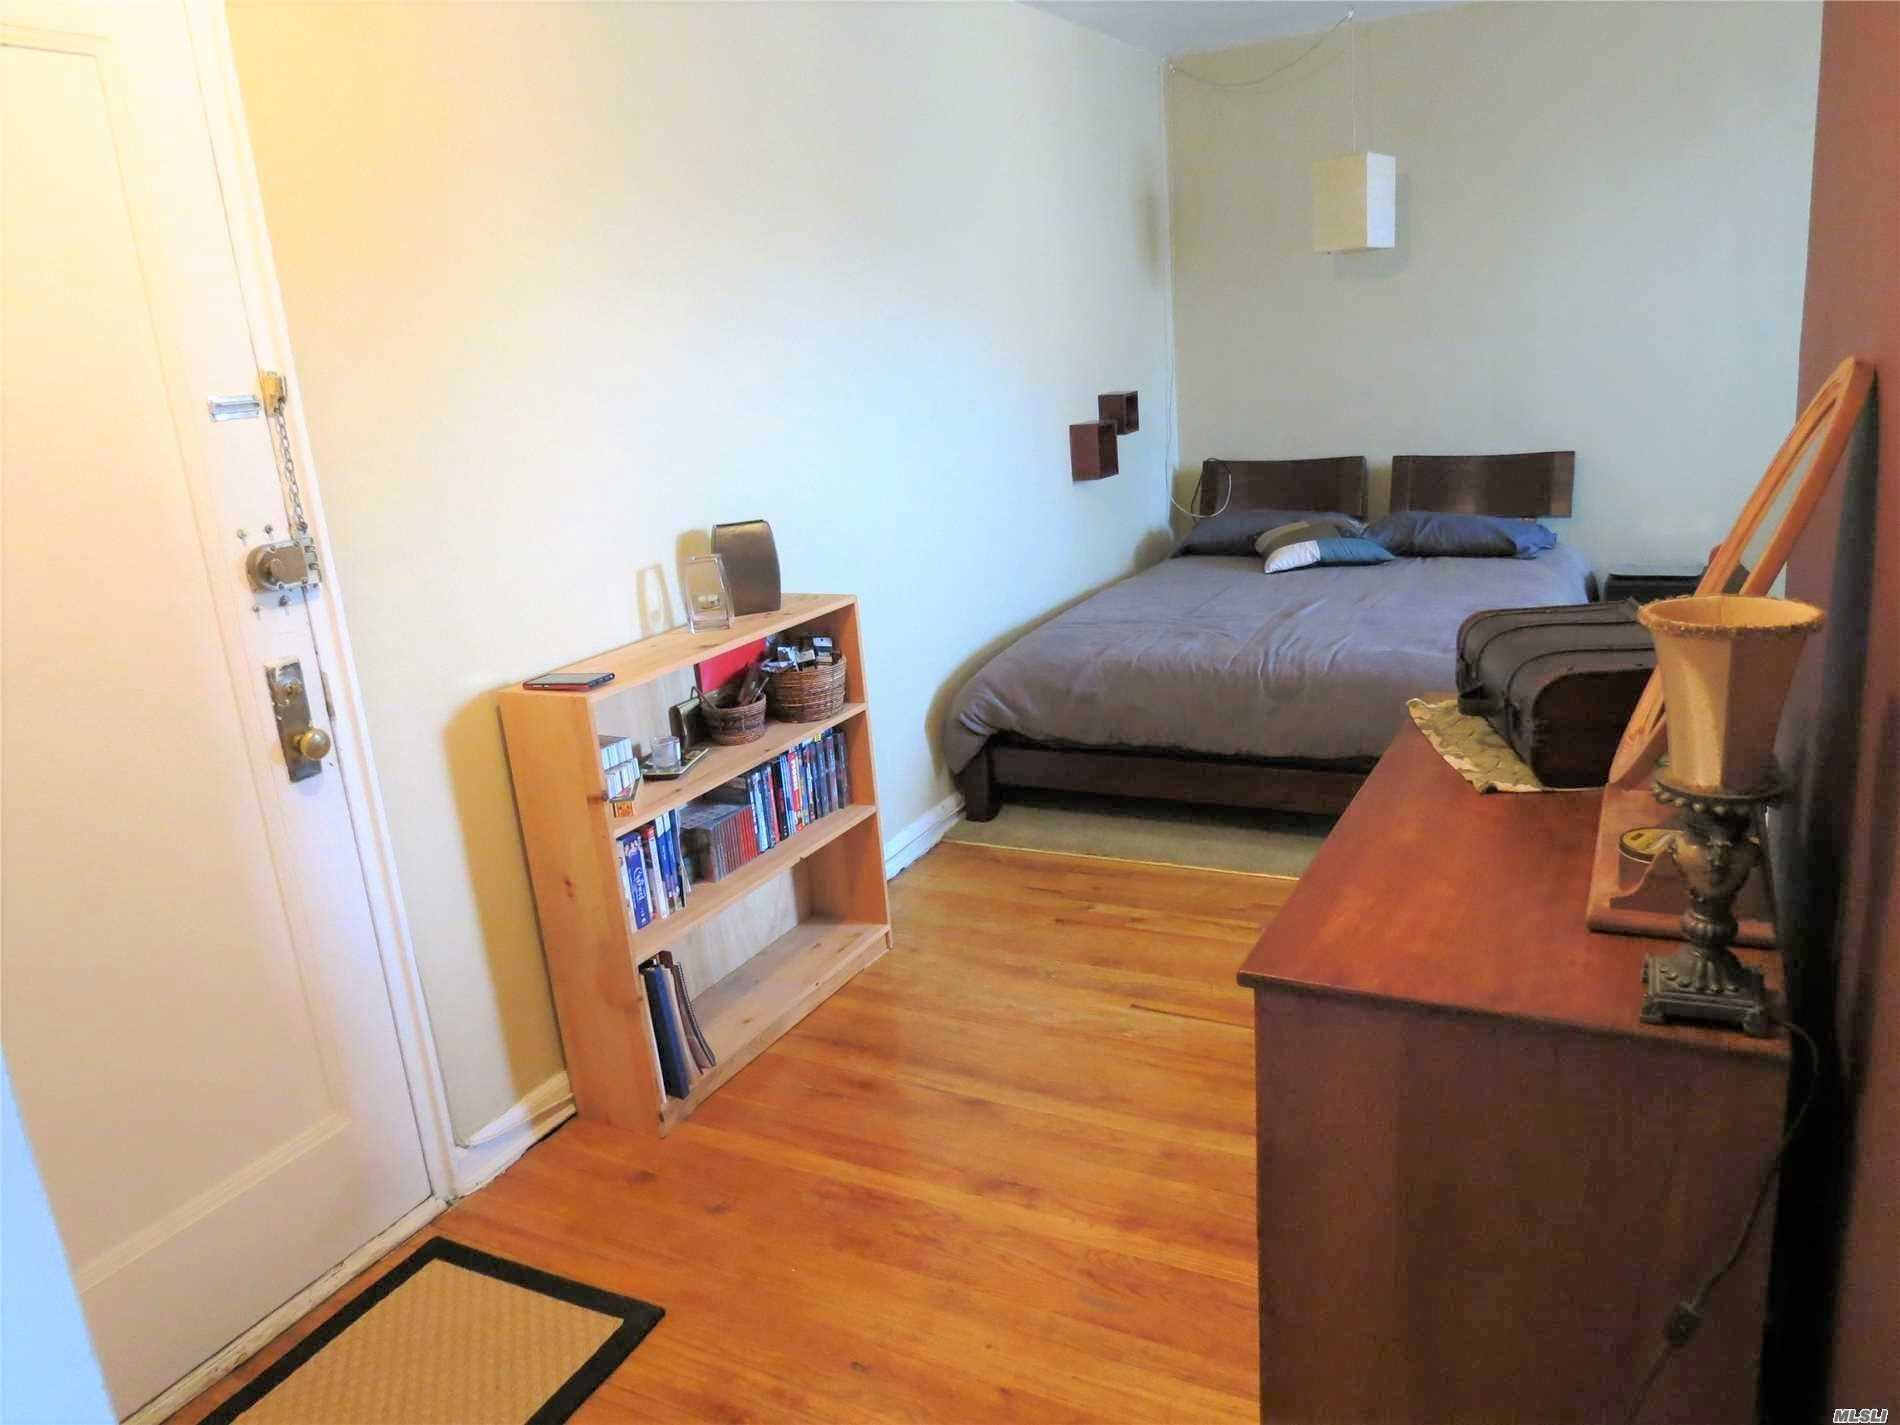 Very Nice Studio In Elevator Building, Laundry Room, Close To Subways, Live In Super, Low Maintenance (Includes Utilities).